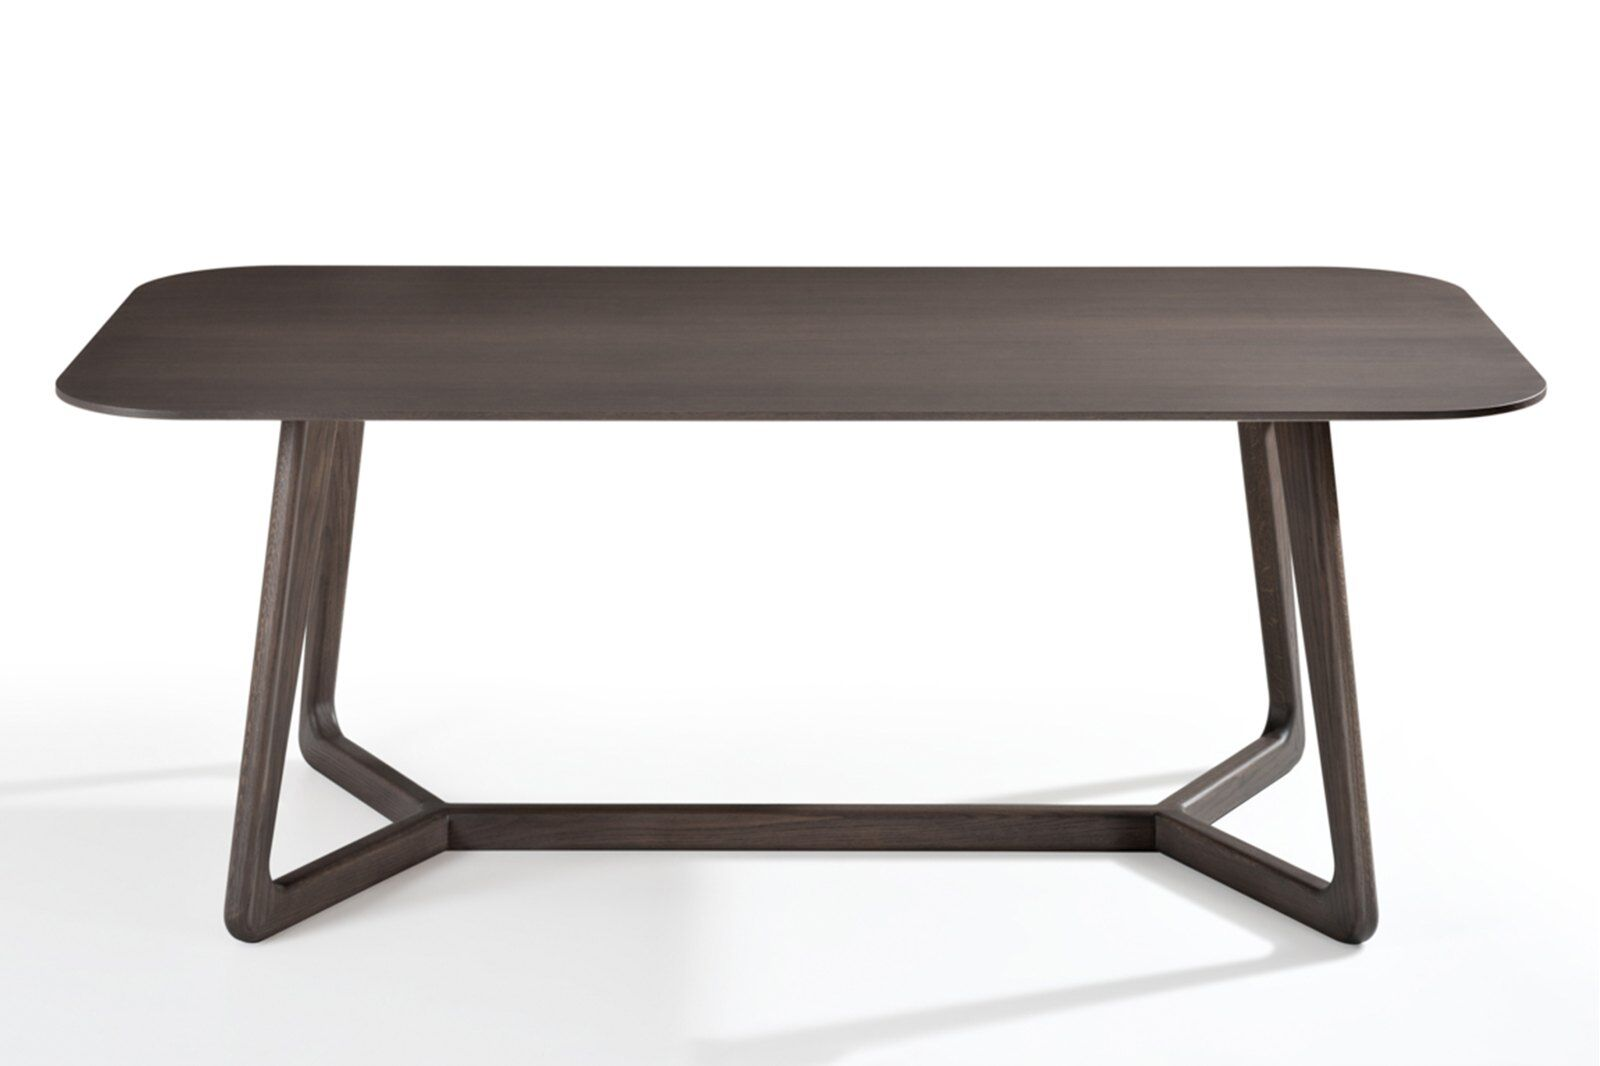 Totem Wood Top Dining Table 200cm / 1